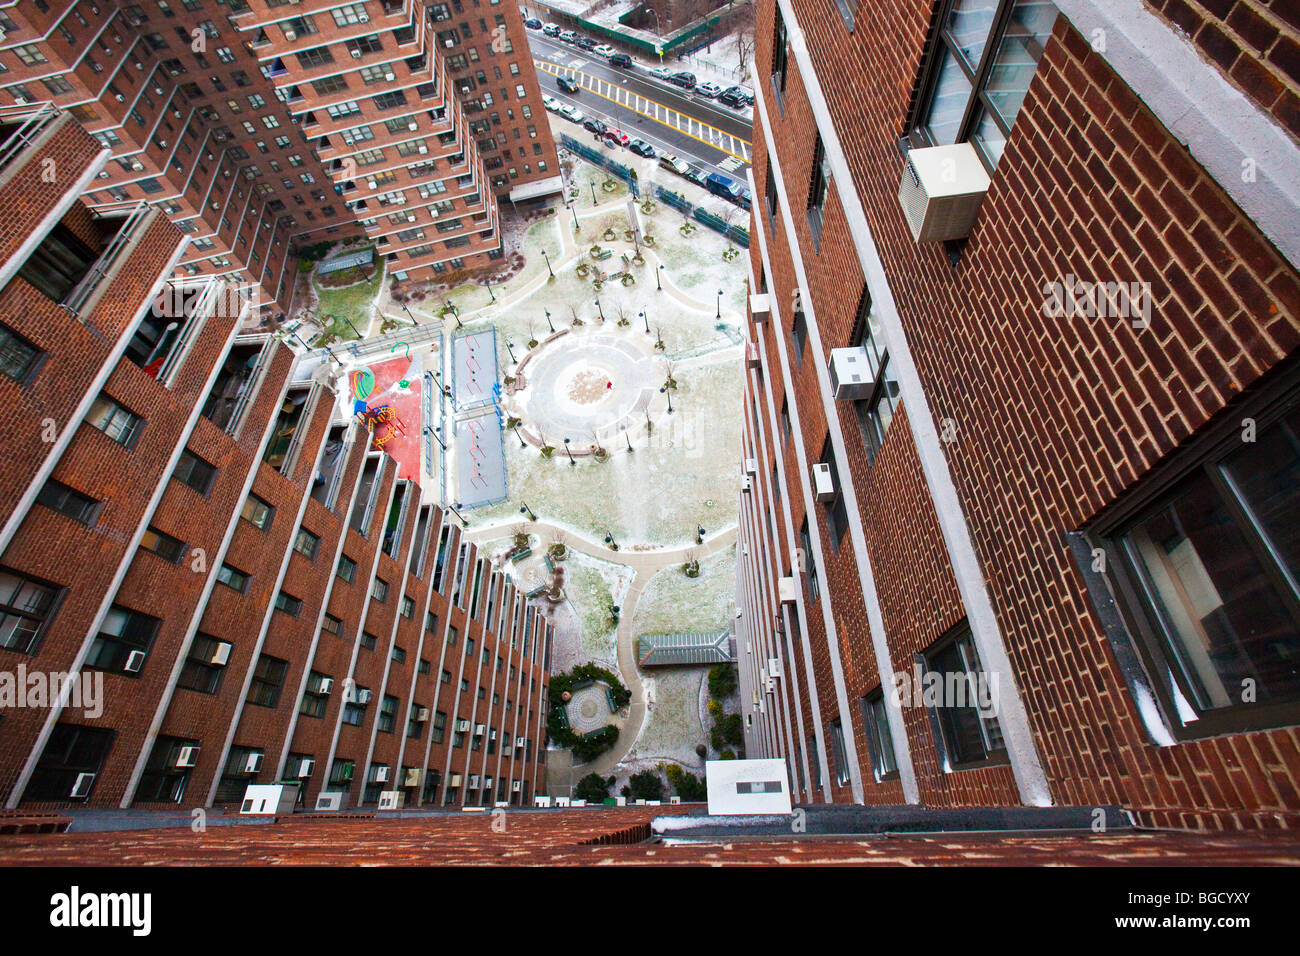 public housing complex on the lower east side of manhattan new york